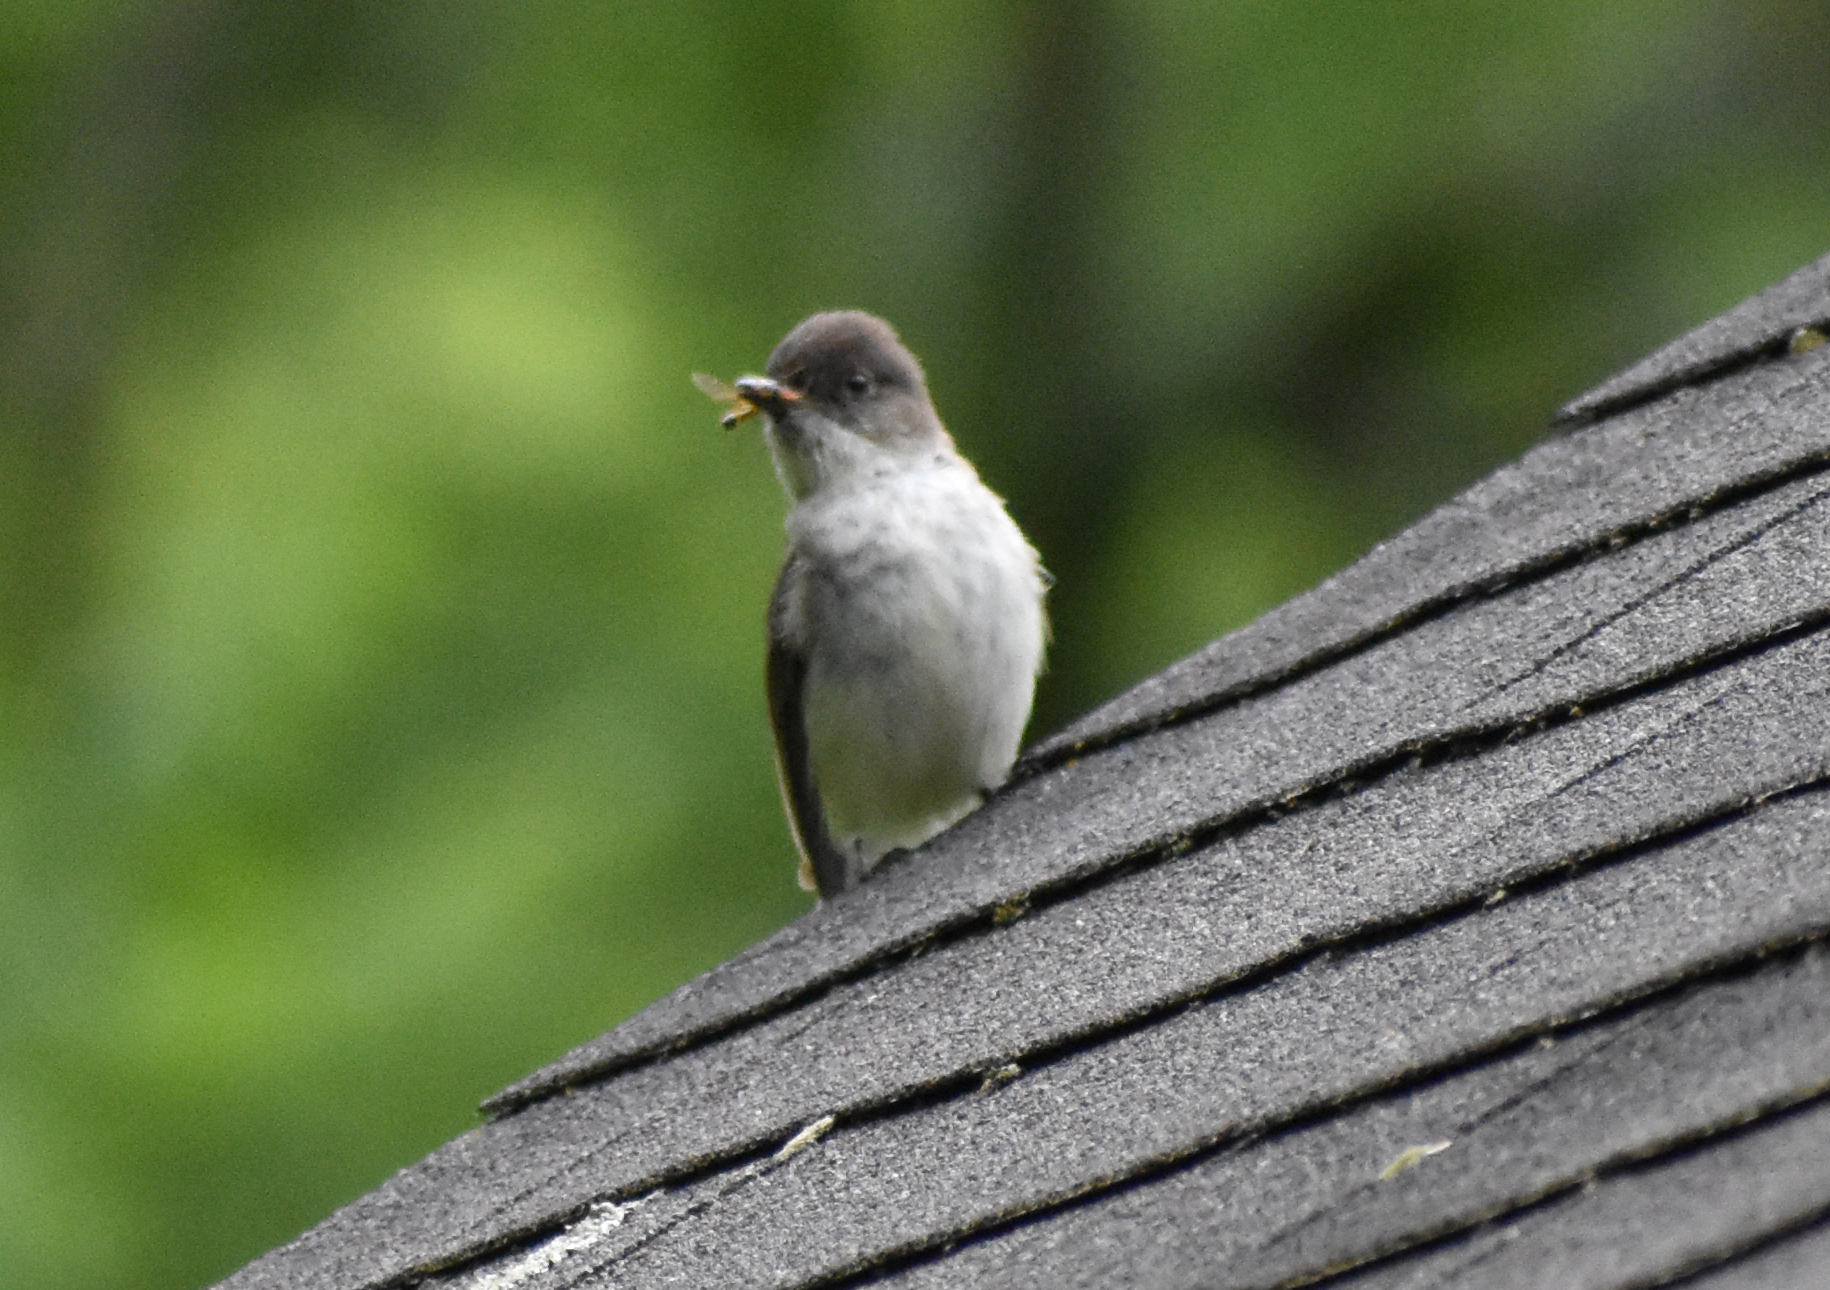 Eastern Phoebe eating a flying insect